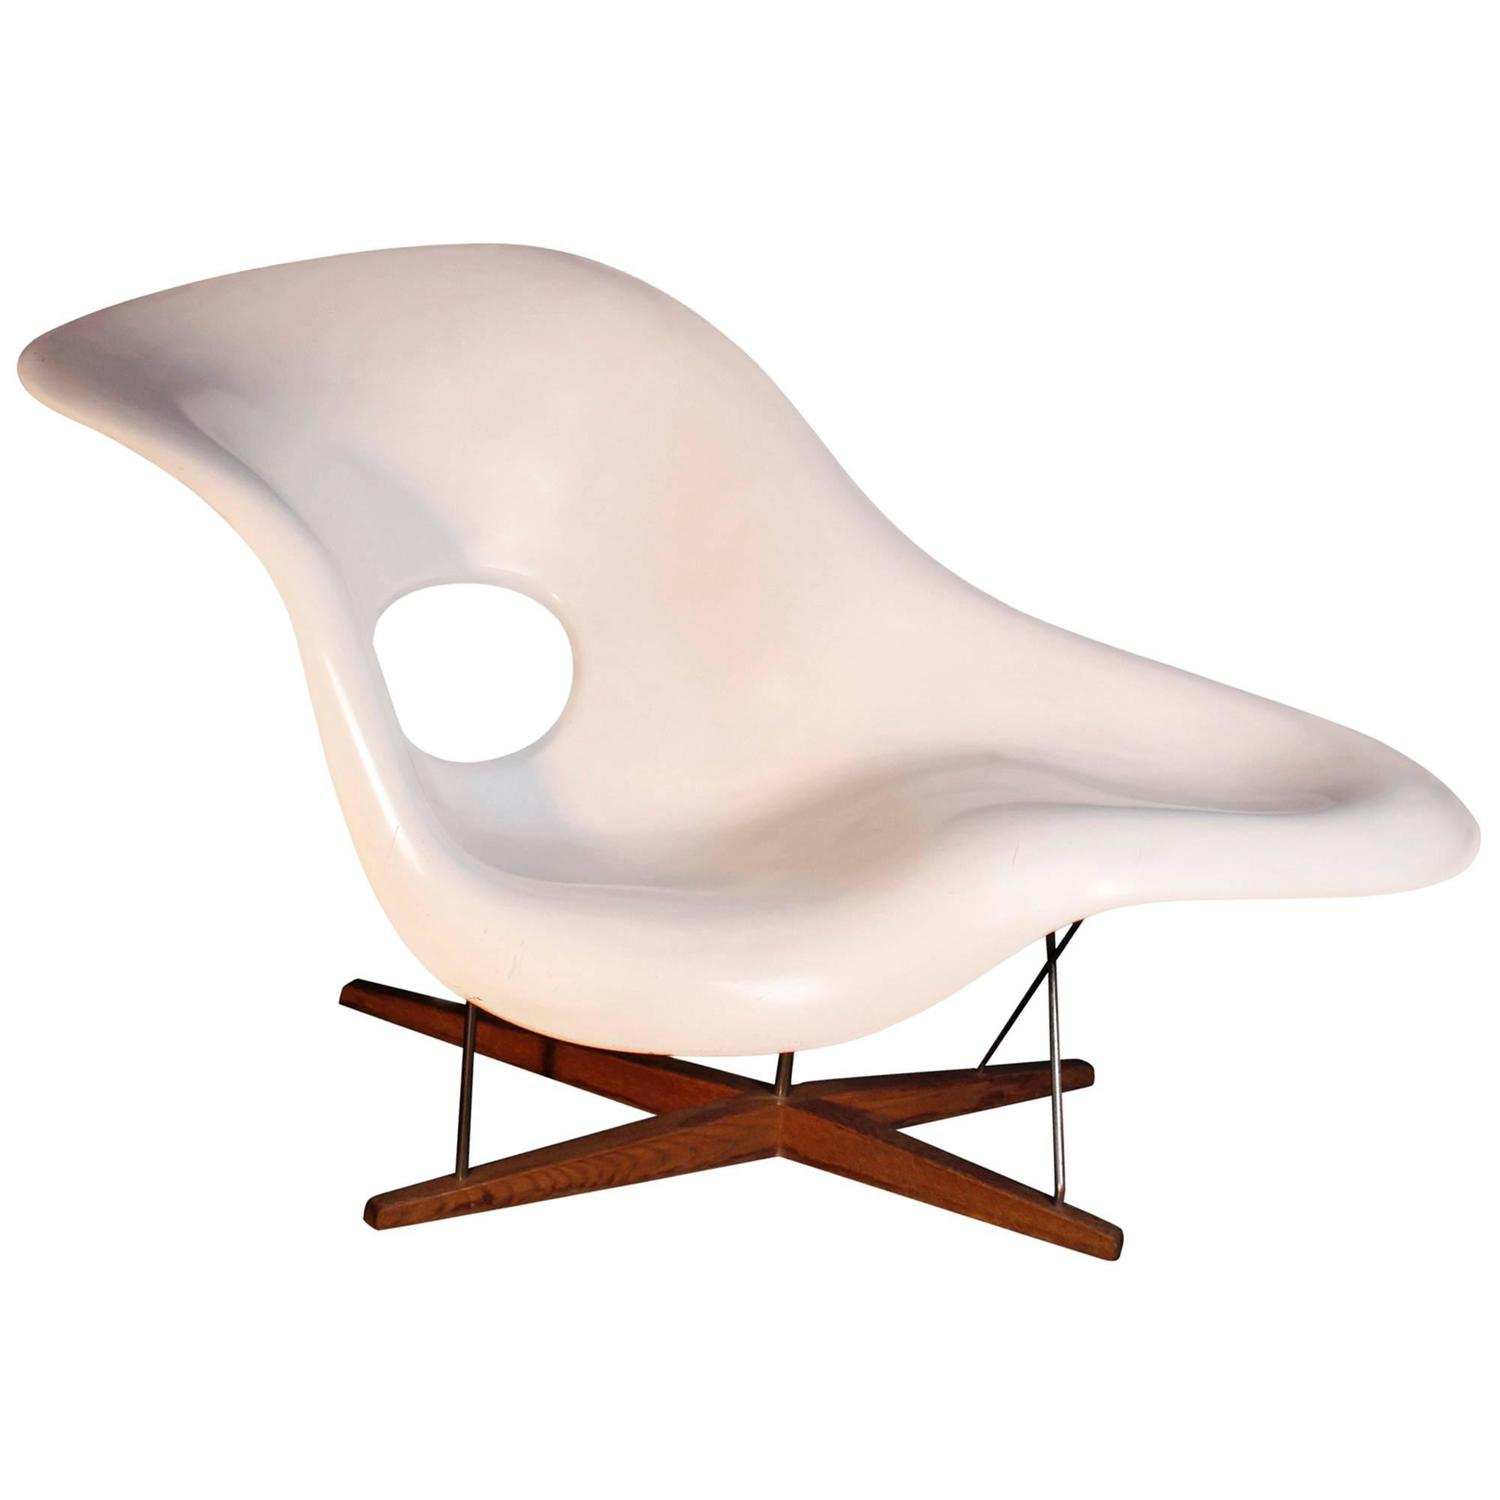 La chaise charles eames chaise longue for sale at 1stdibs - Lampadaire la chaise longue ...